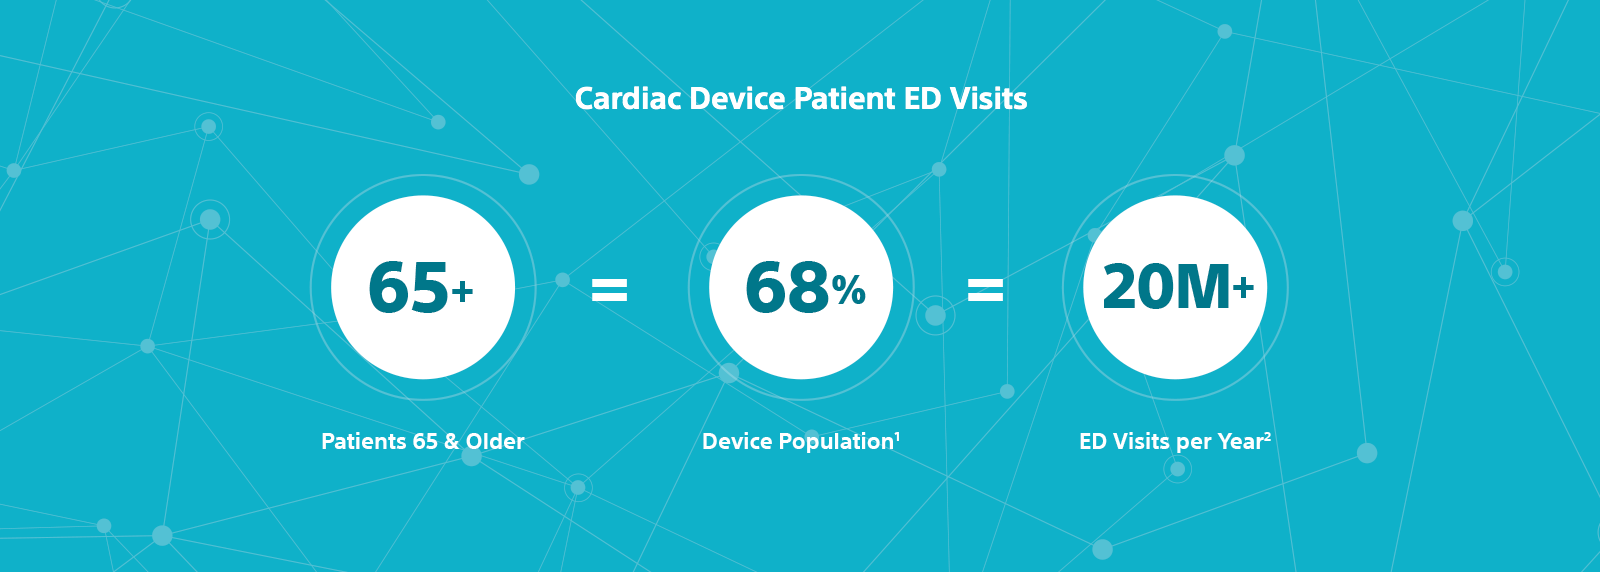 Graphic showing patients 65+ equal 68% of the device population, which account for over 20 million emergency department visits per year.